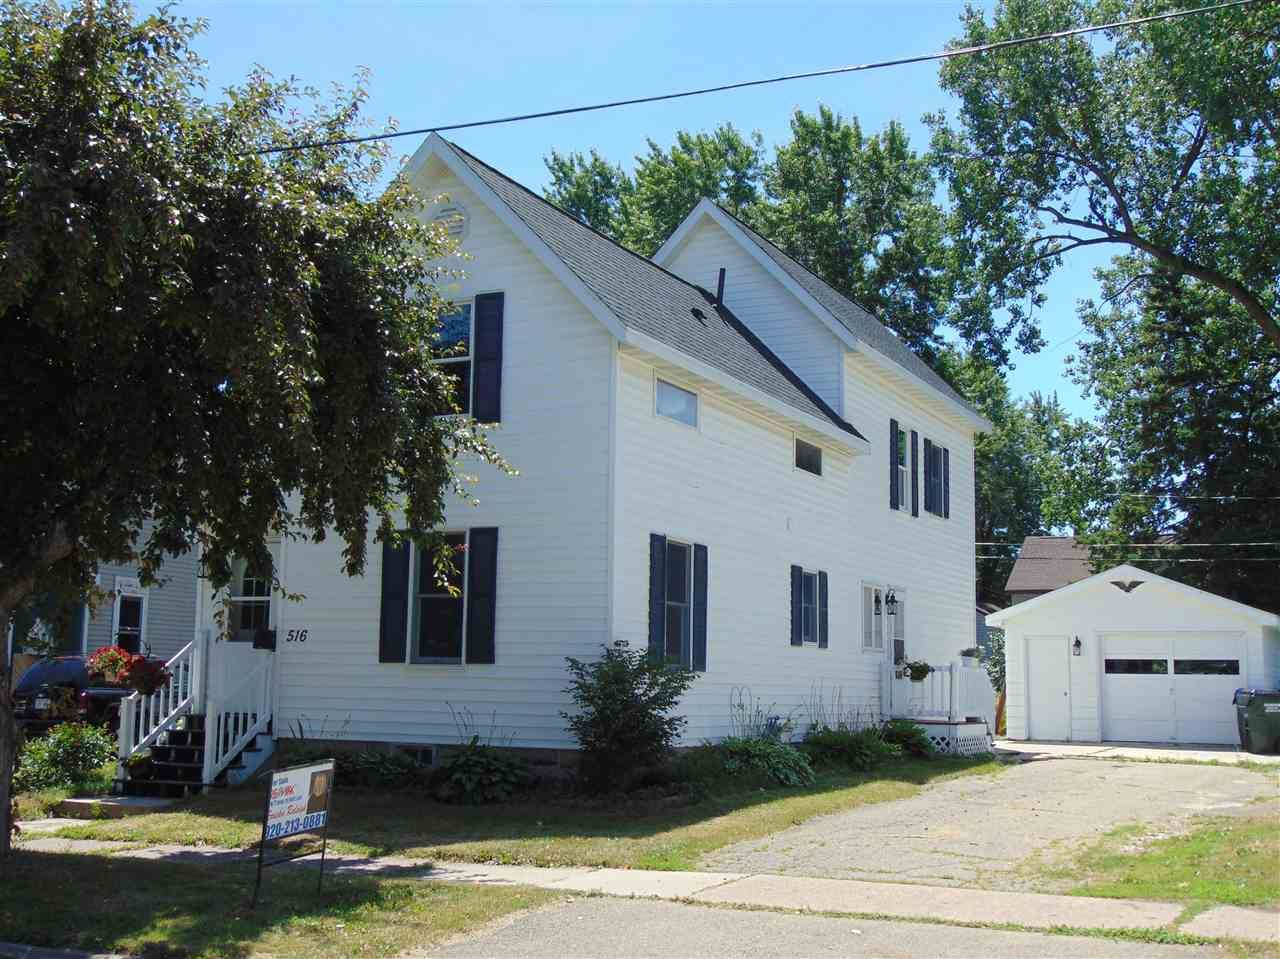 516 E WASHINGTON Street, New London, WI 54961 - MLS#: 50235910